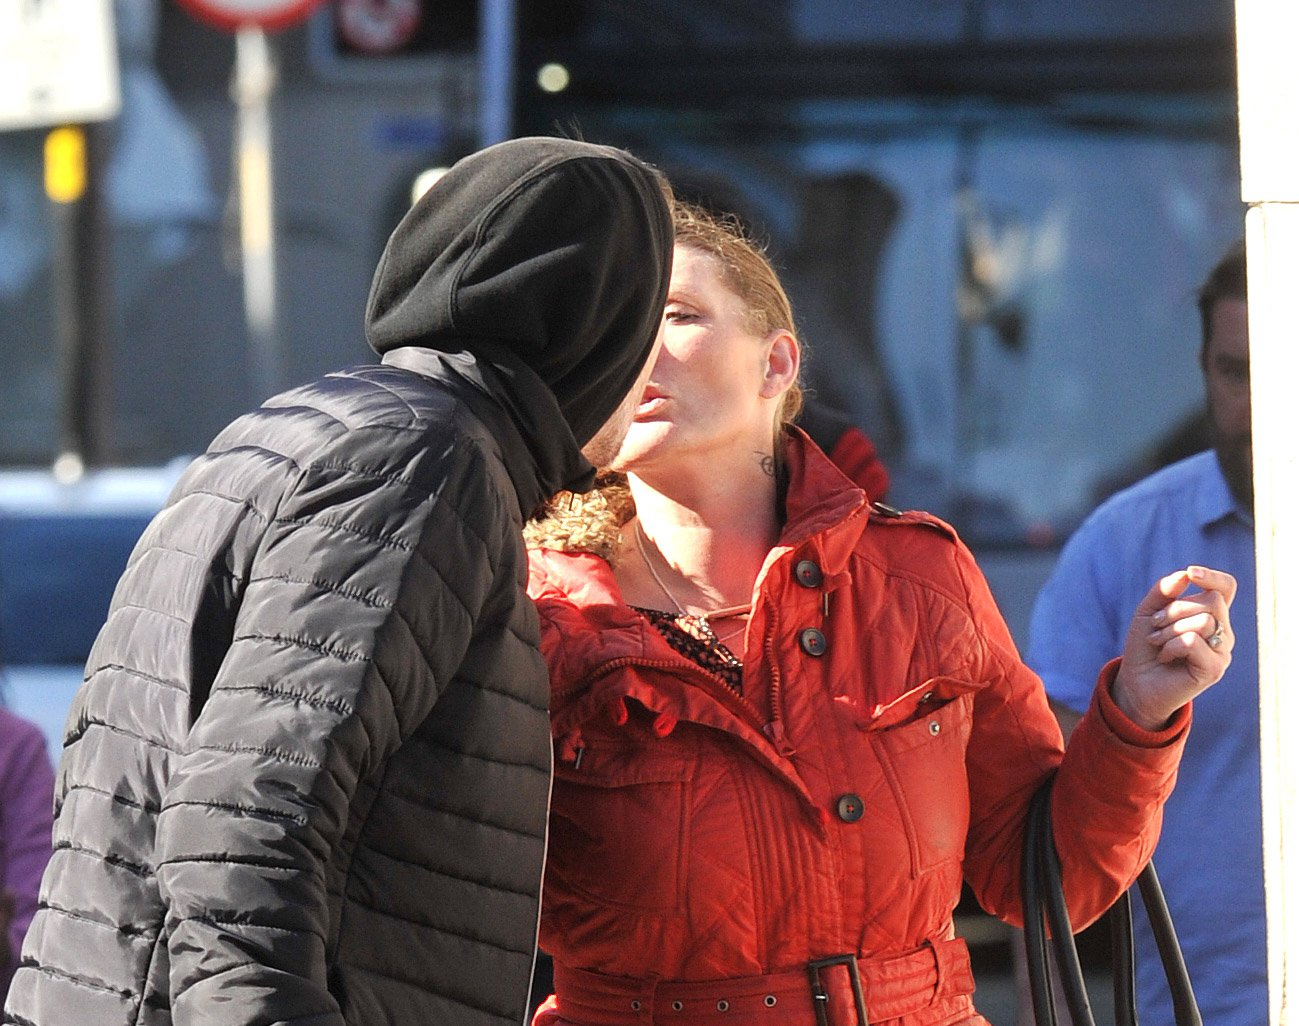 A woman who pushed her boyfriend onto a city centre tram track during a furious alcohol-fulled row is now ENGAGED to him, a court heard. Gillian Bond shoved John Dolan onto the Metrolink line near Manchester's Victoria station just seconds before a tram in. Caption: Gillian Bond (right), 41, of Anita Street in Ancoats, central Manchester, who was sentenced to 12 months in prison, suspended for two years, after she pleaded guilty at Manchester Crown Court to assault occasioning actual bodily harm against her boyfriend John Dolan (left, hooded)